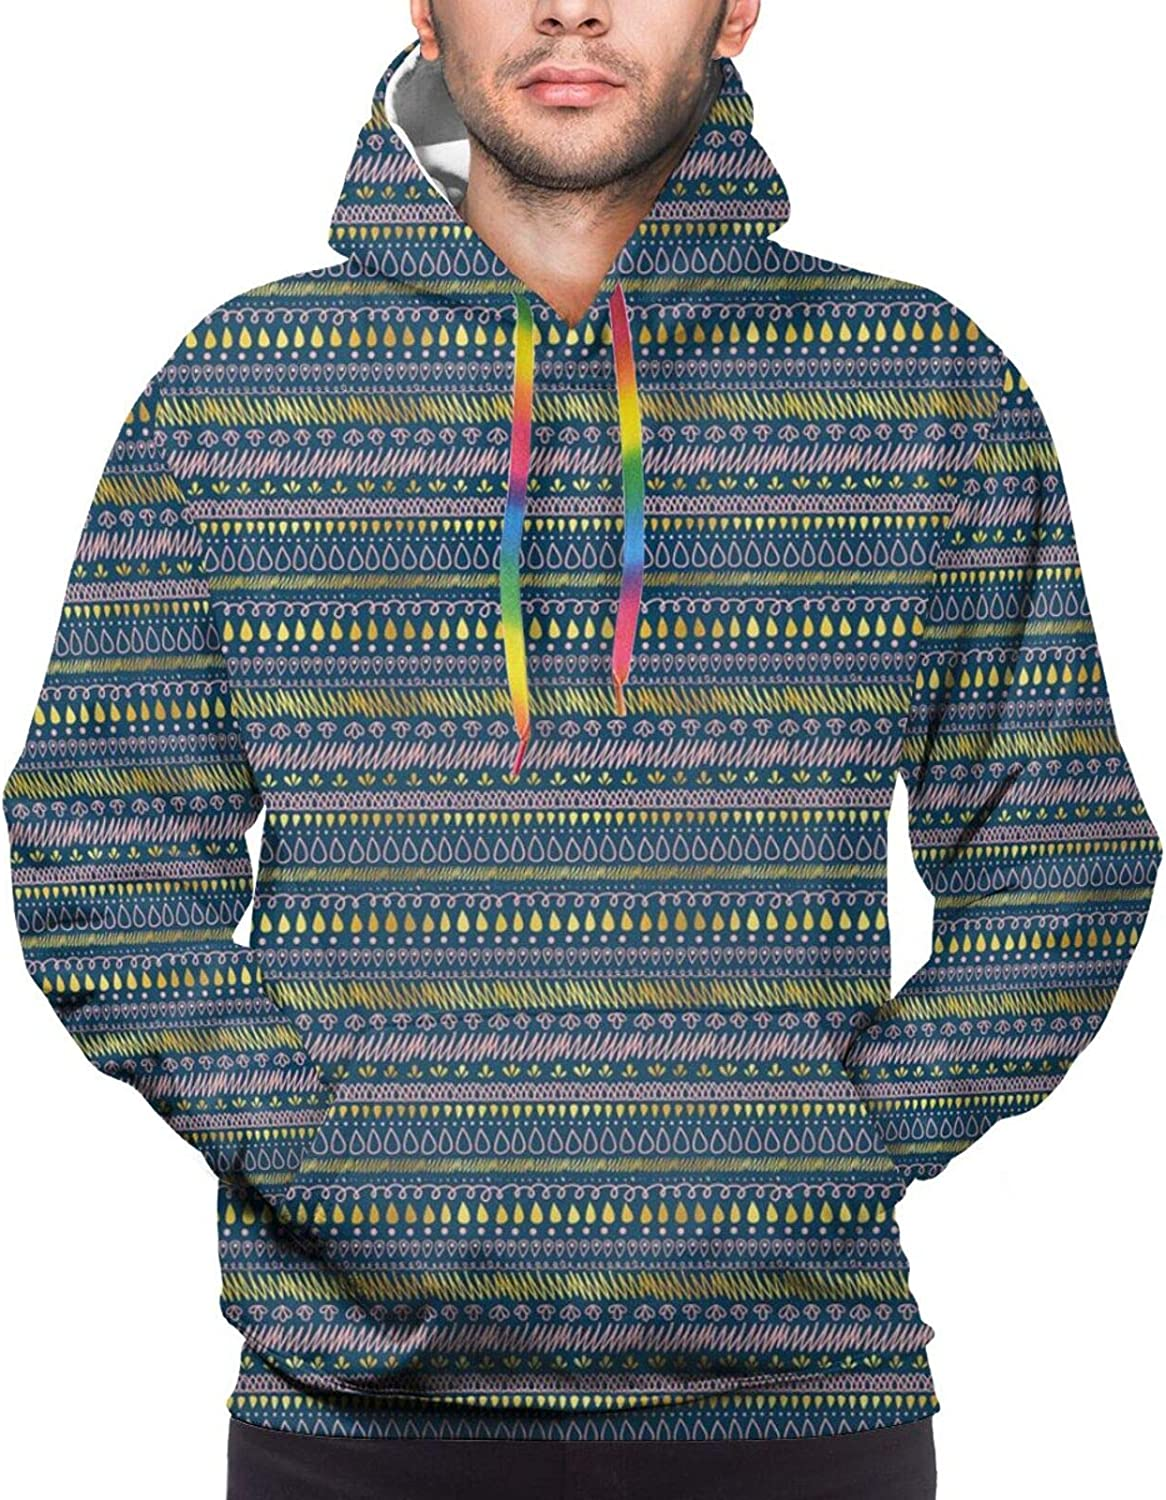 Men's Hoodies Sweatshirts,Abstract Repetition with Scribble Zigzags Drops and Spots